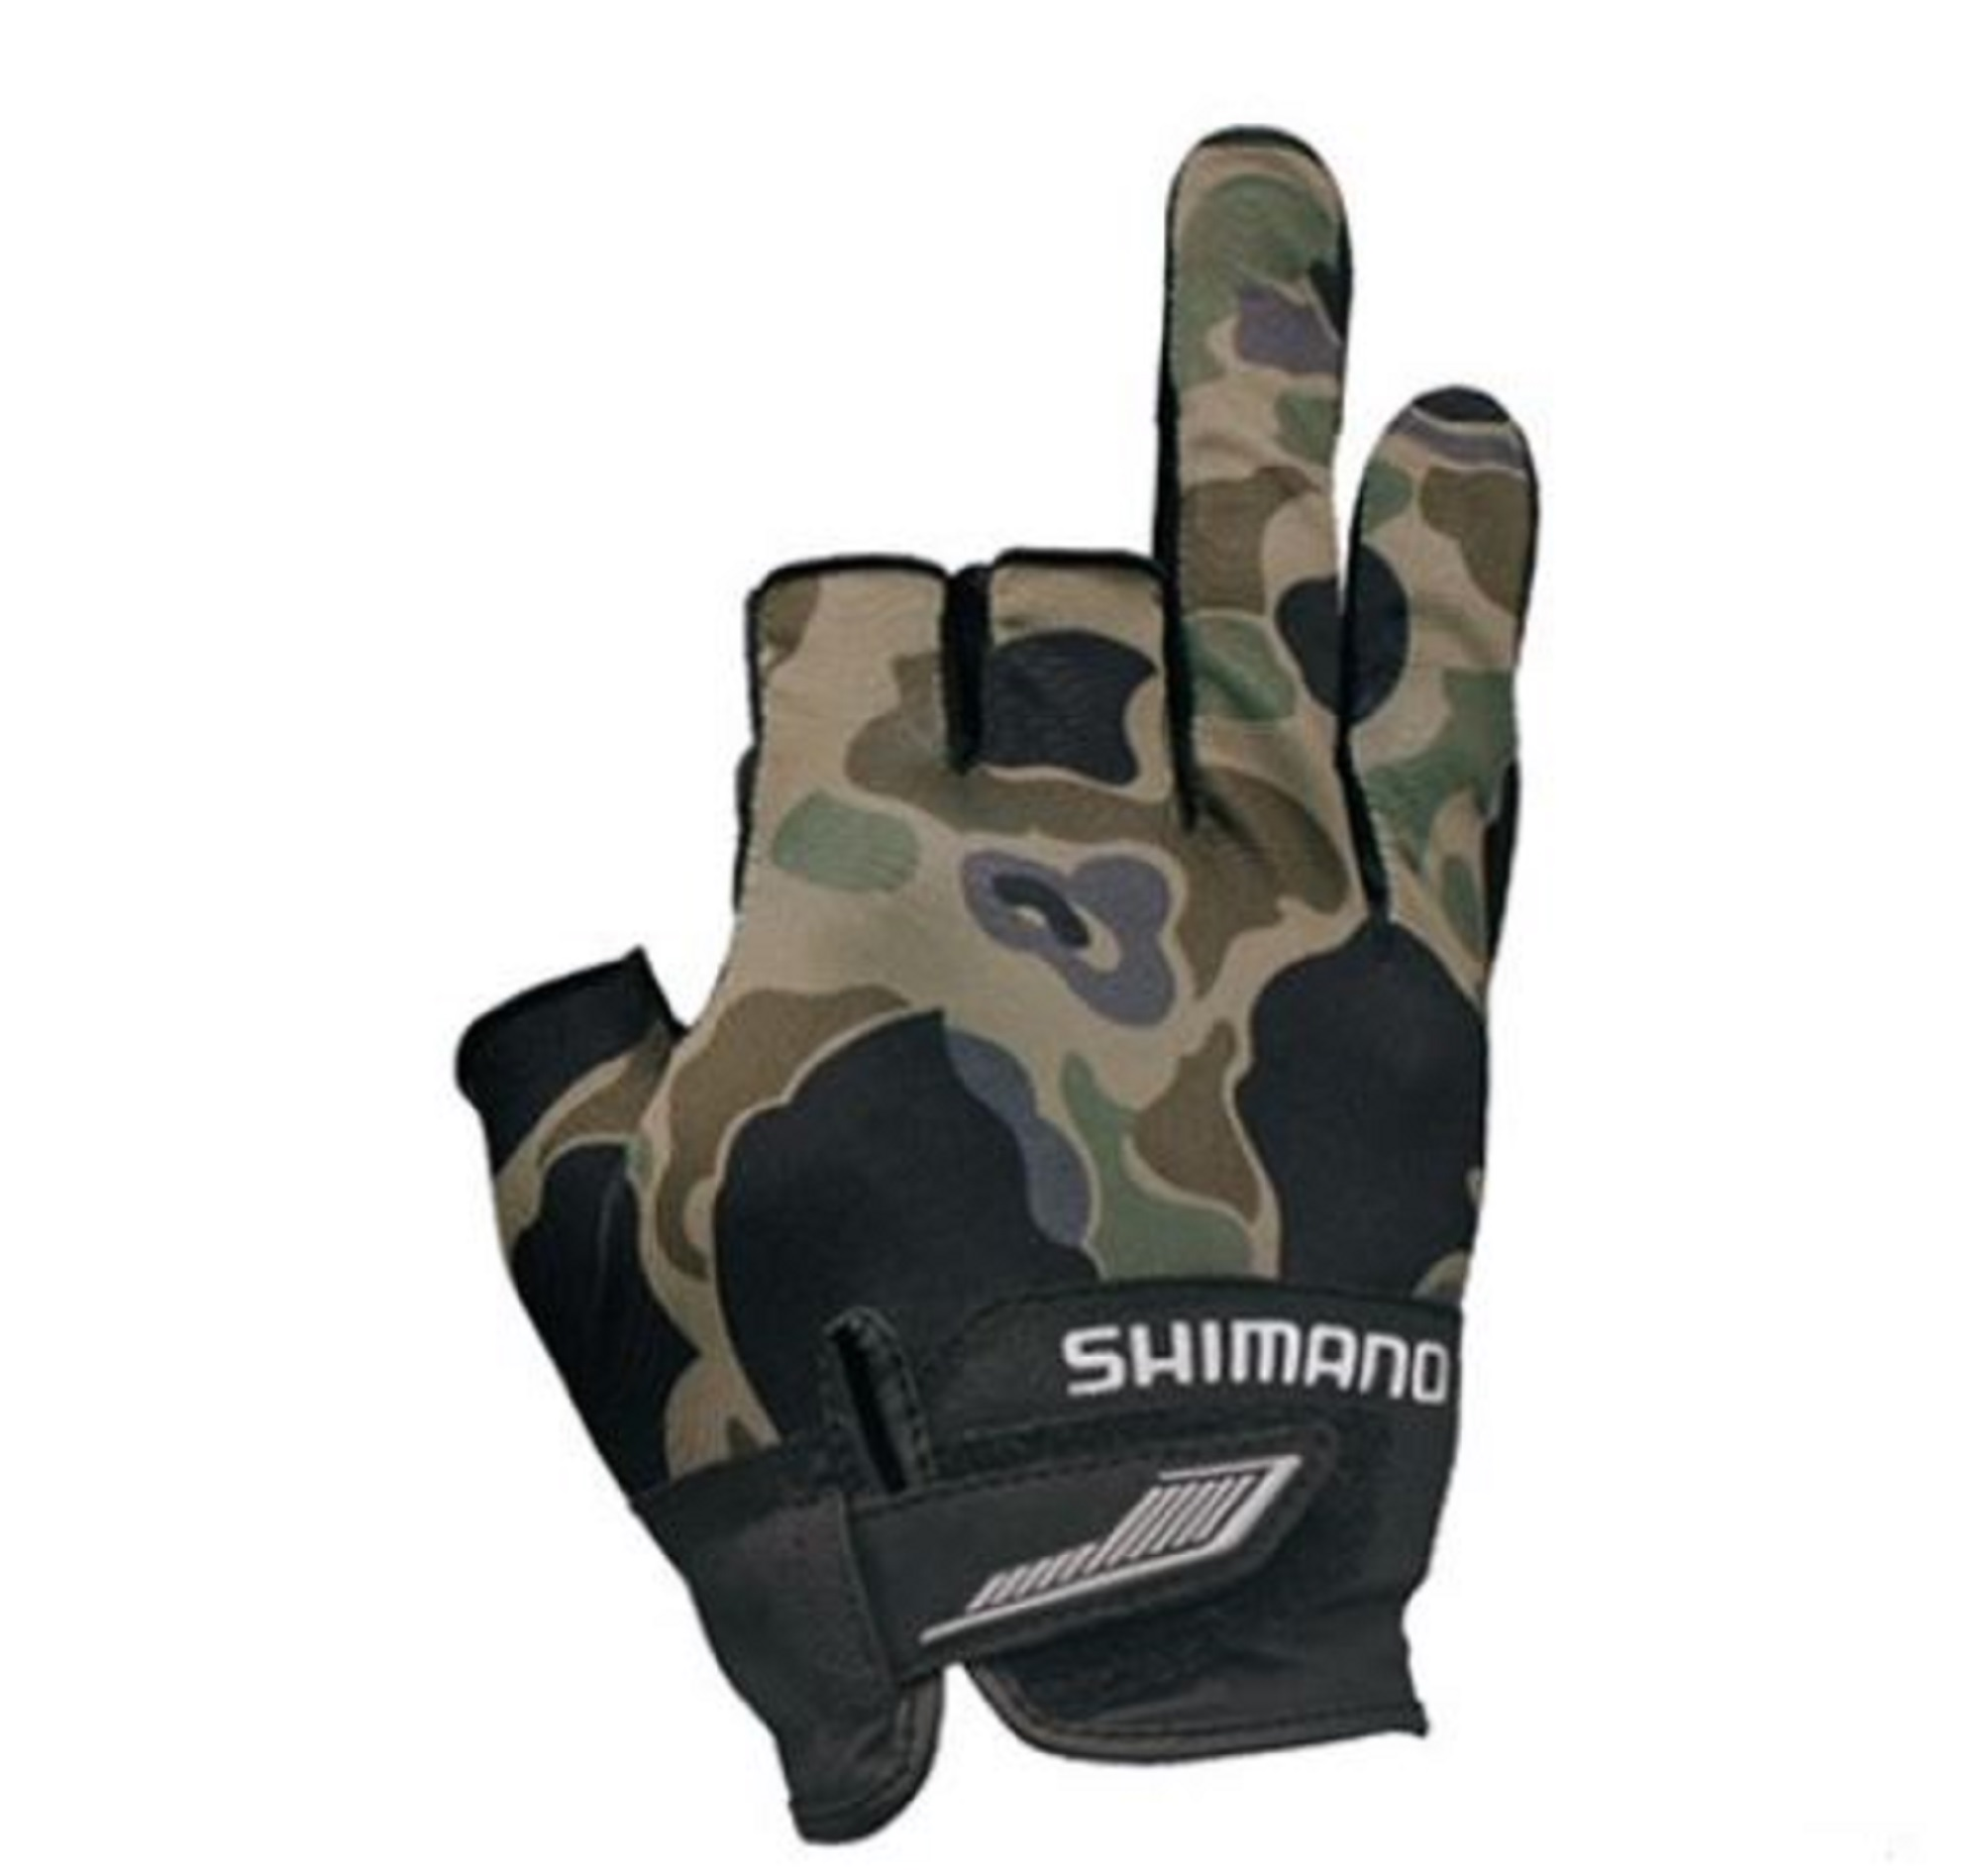 Shimano GL-021S Gloves 3D Casting 3 Fingerless Camou Size M 669414